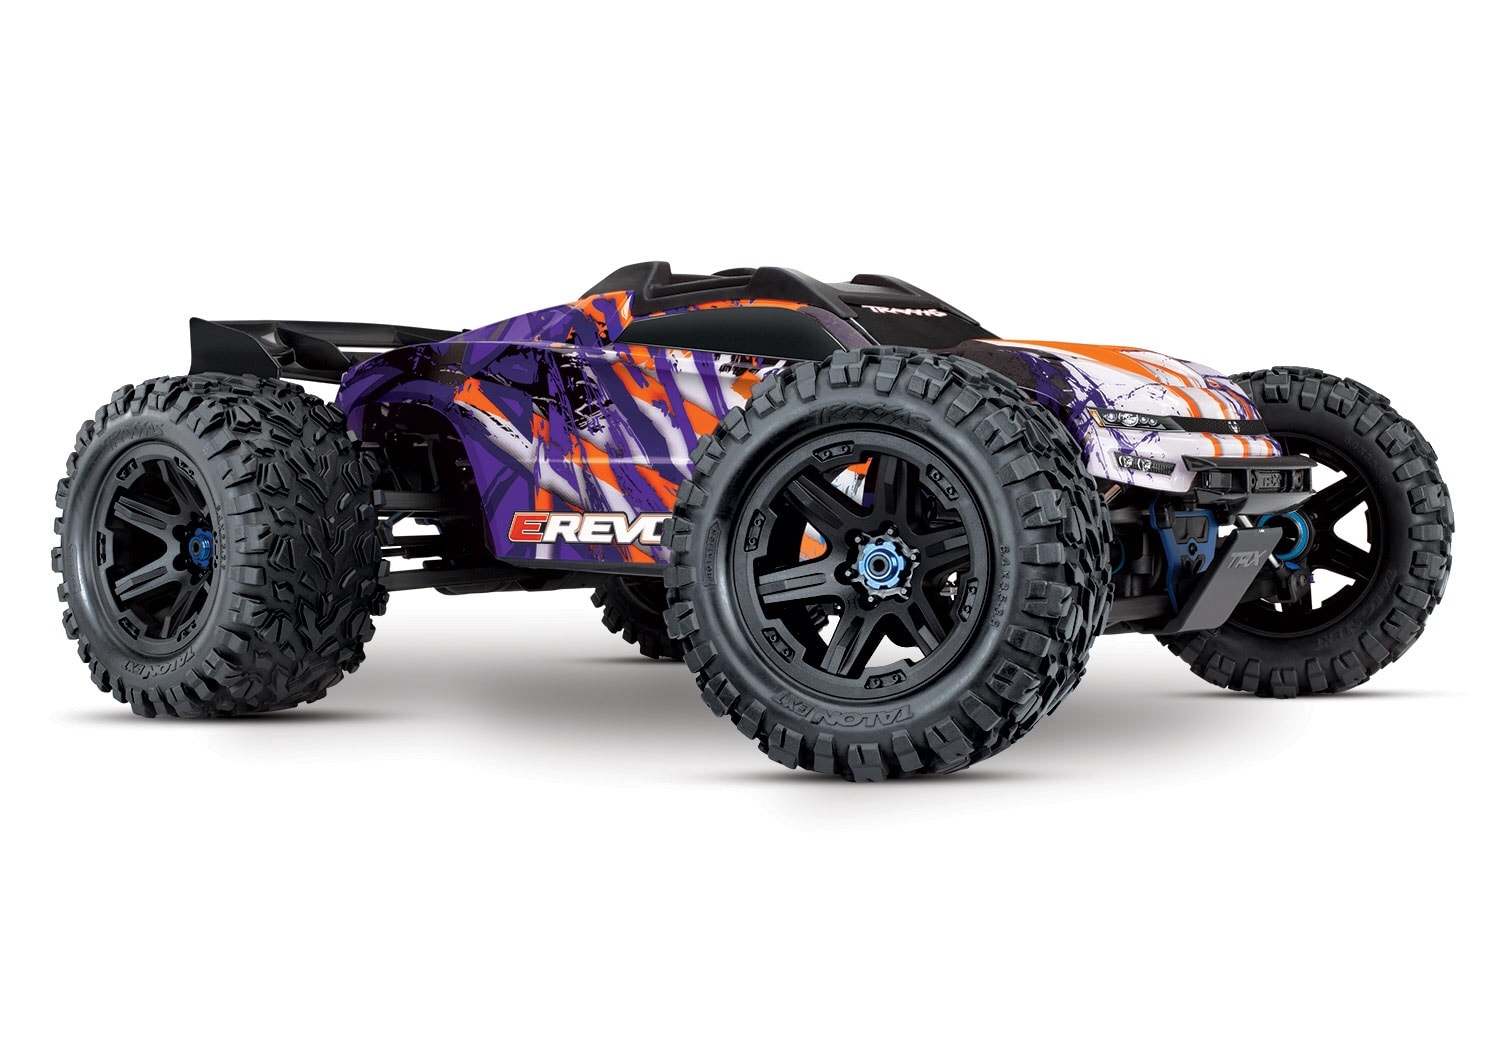 Traxxas Two-step: New Color Options for the E-Revo